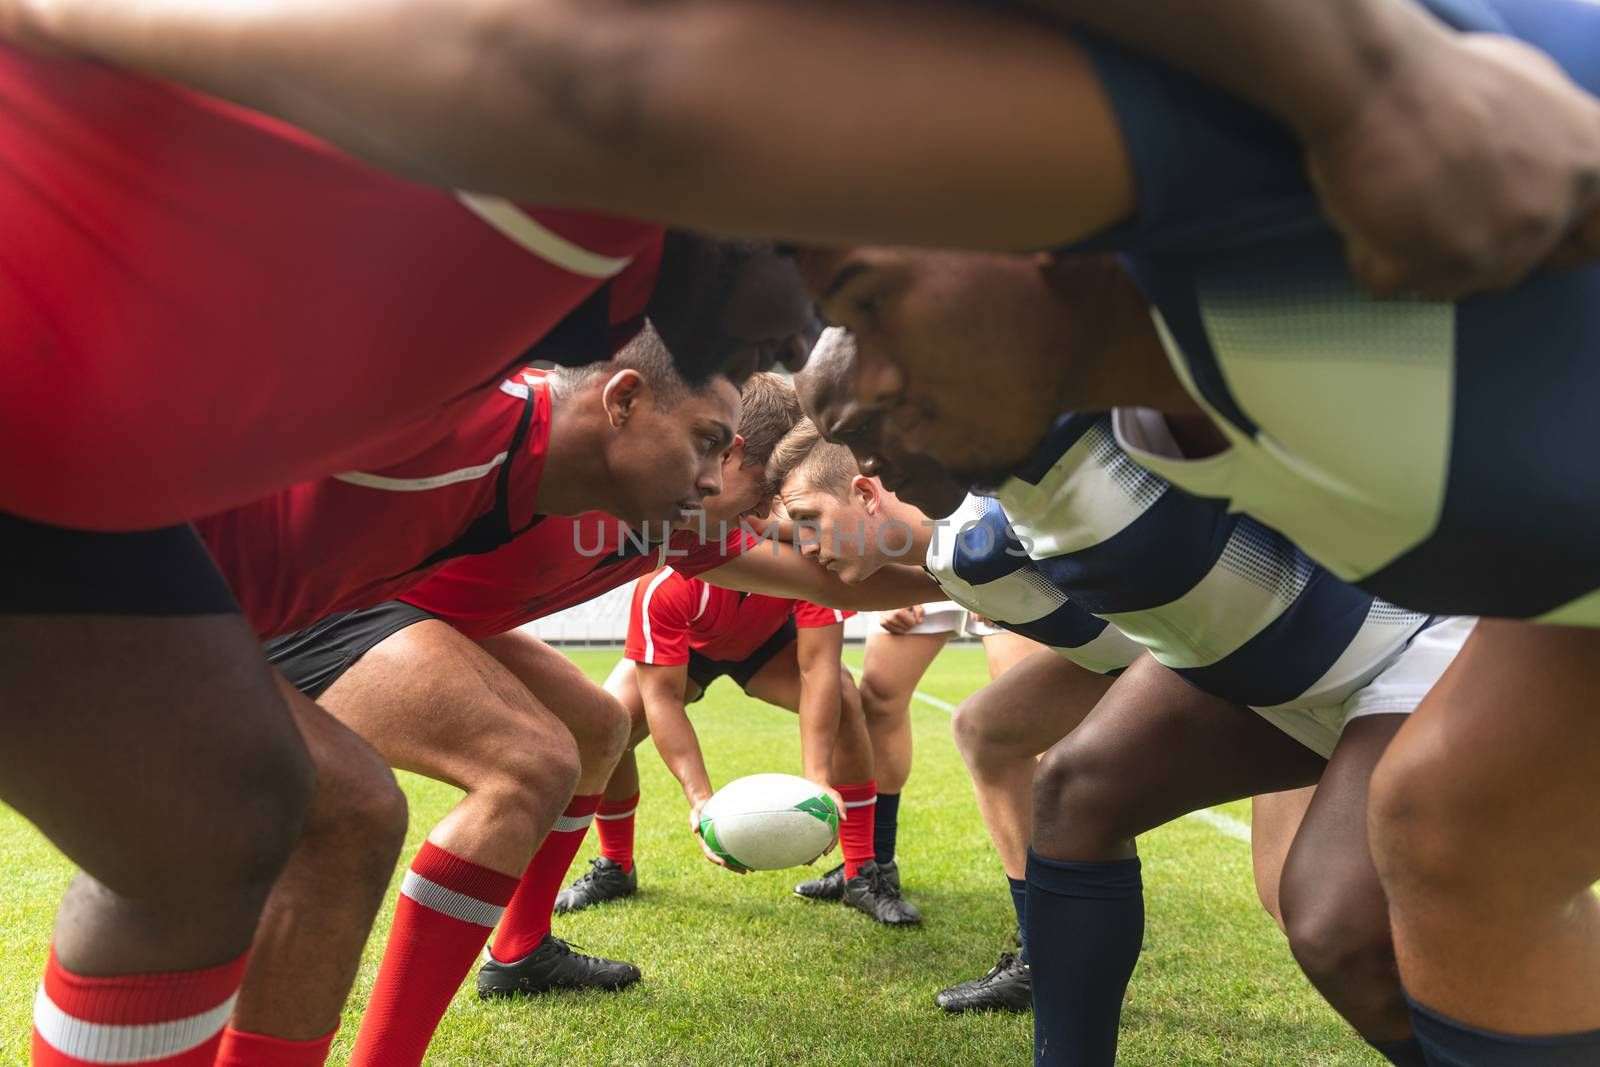 Side view of group of diverse male rugby players ready to play rugby match in stadium. Players are looking into the eyes of the competitors.